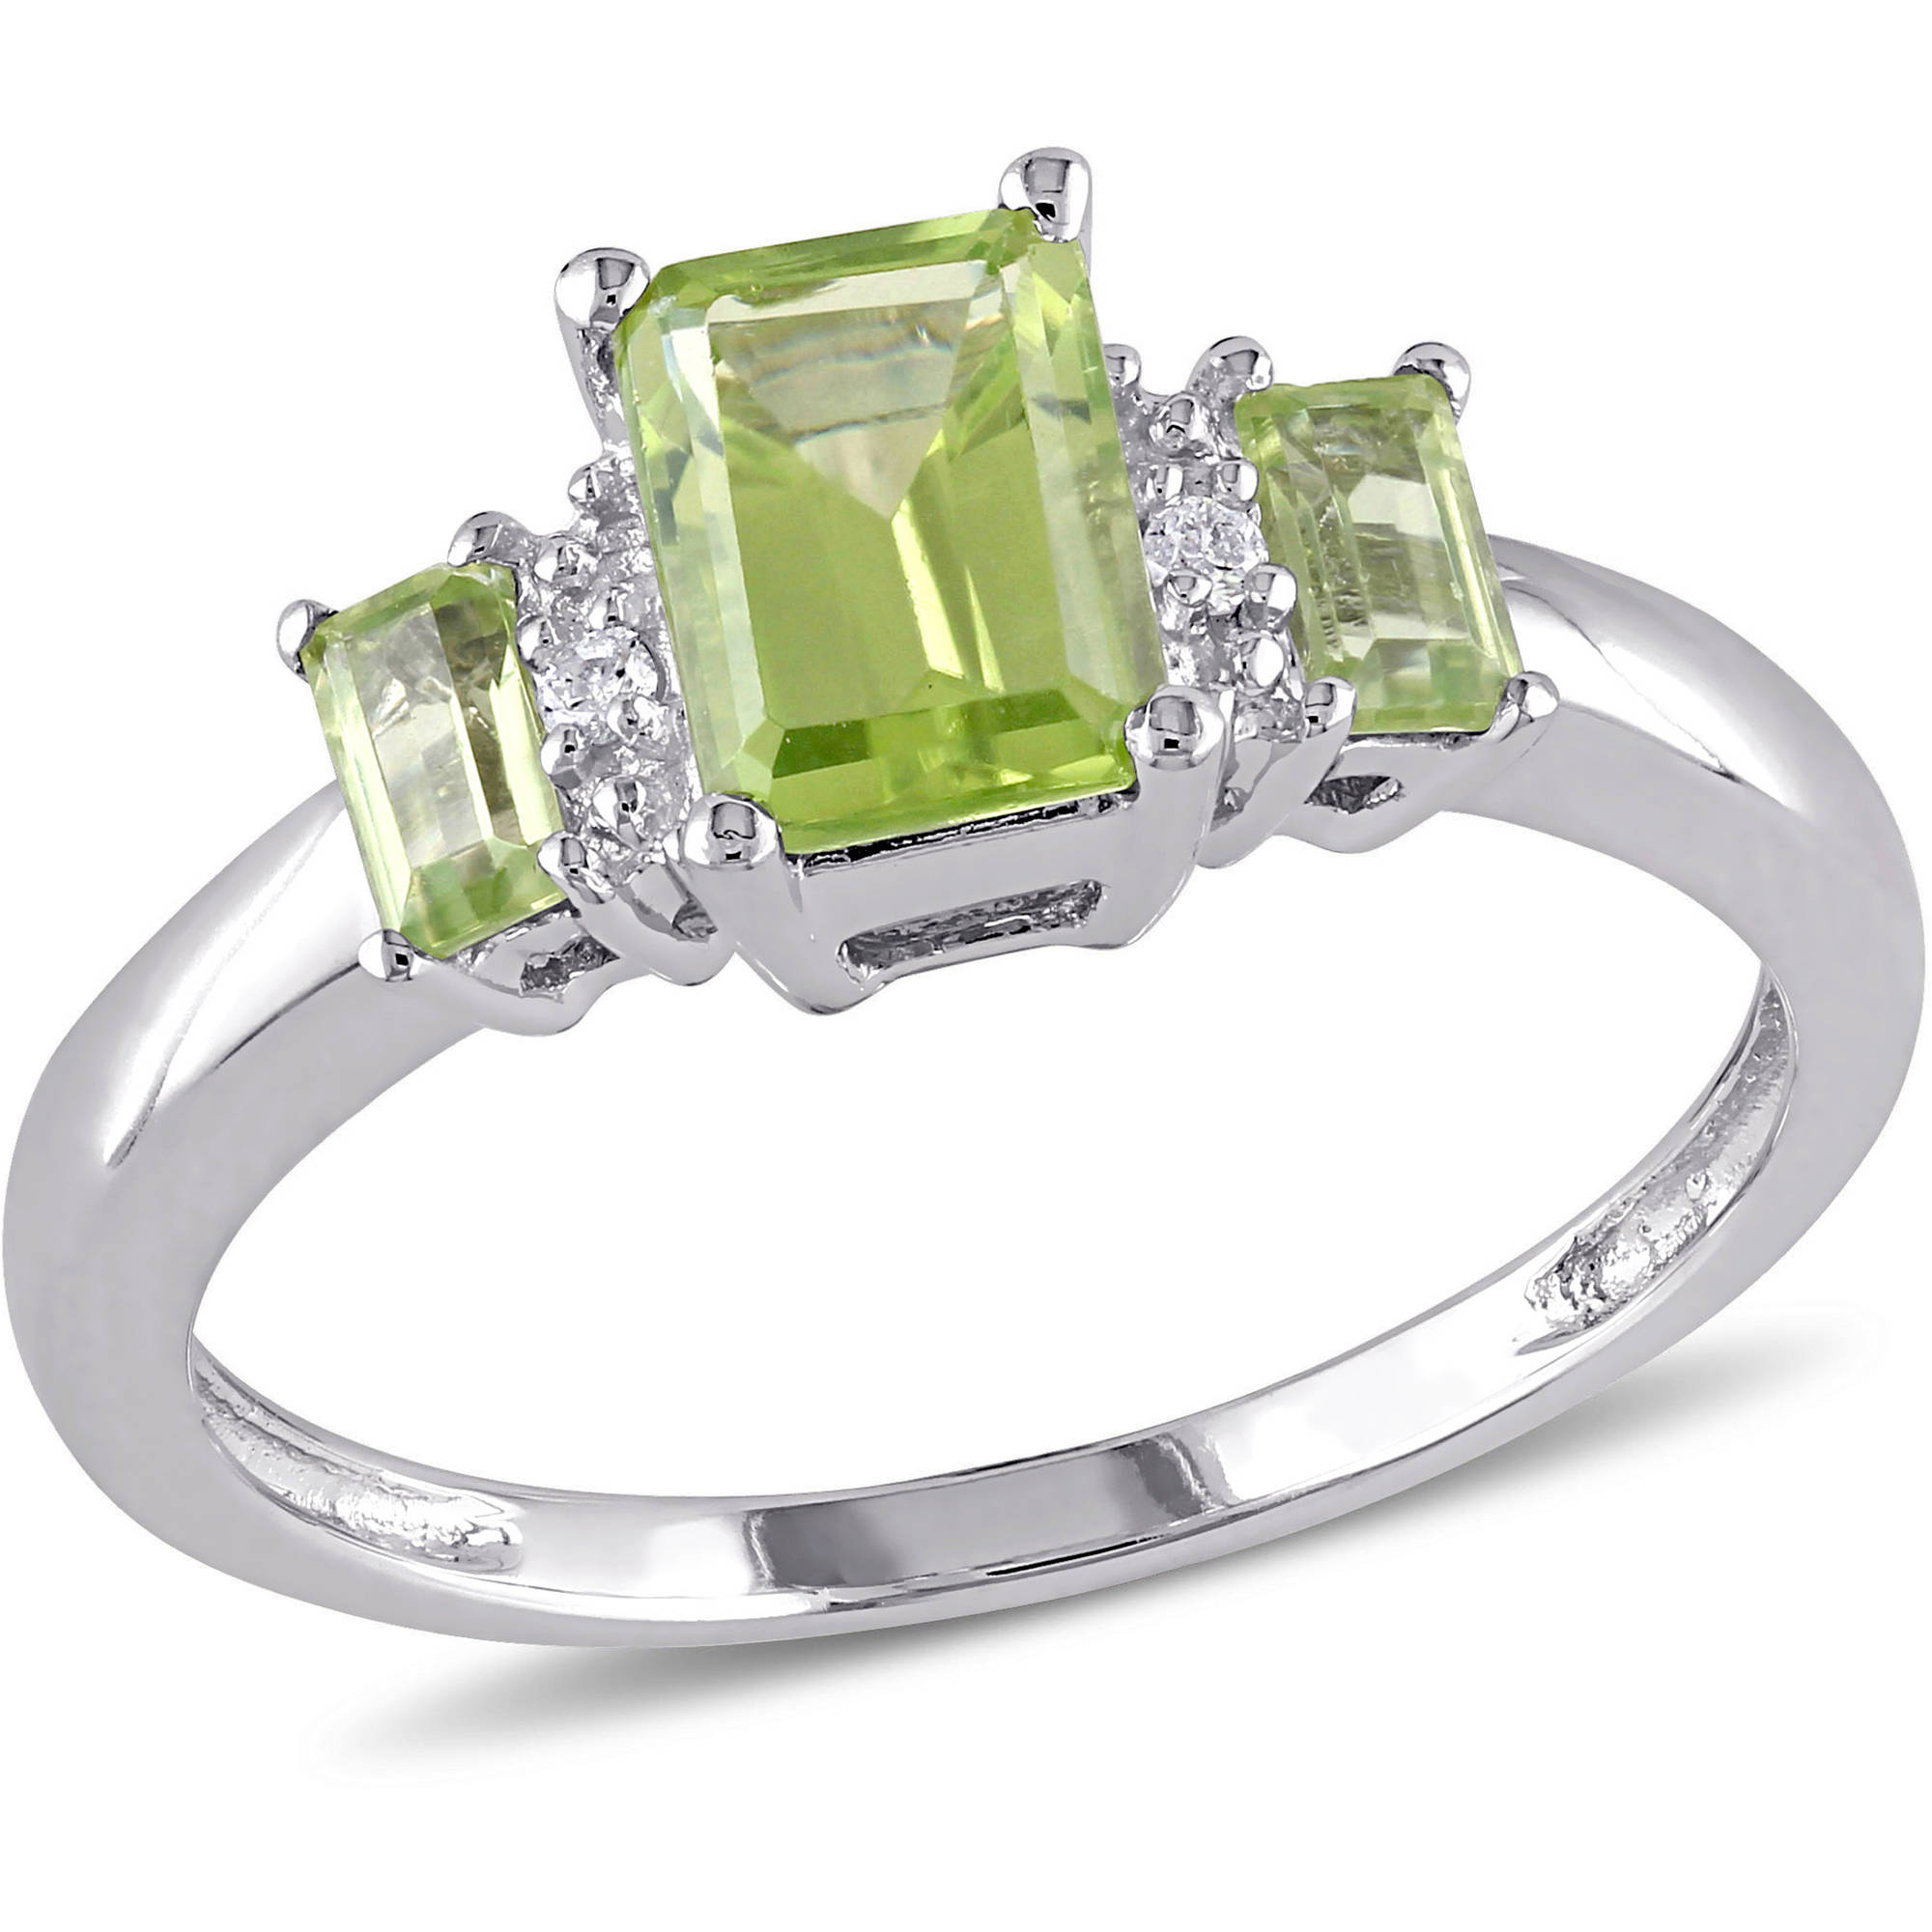 Tangelo 1-1/4 Carat T.G.W. Peridot and Diamond-Accent 10kt White Gold Three-Stone Ring